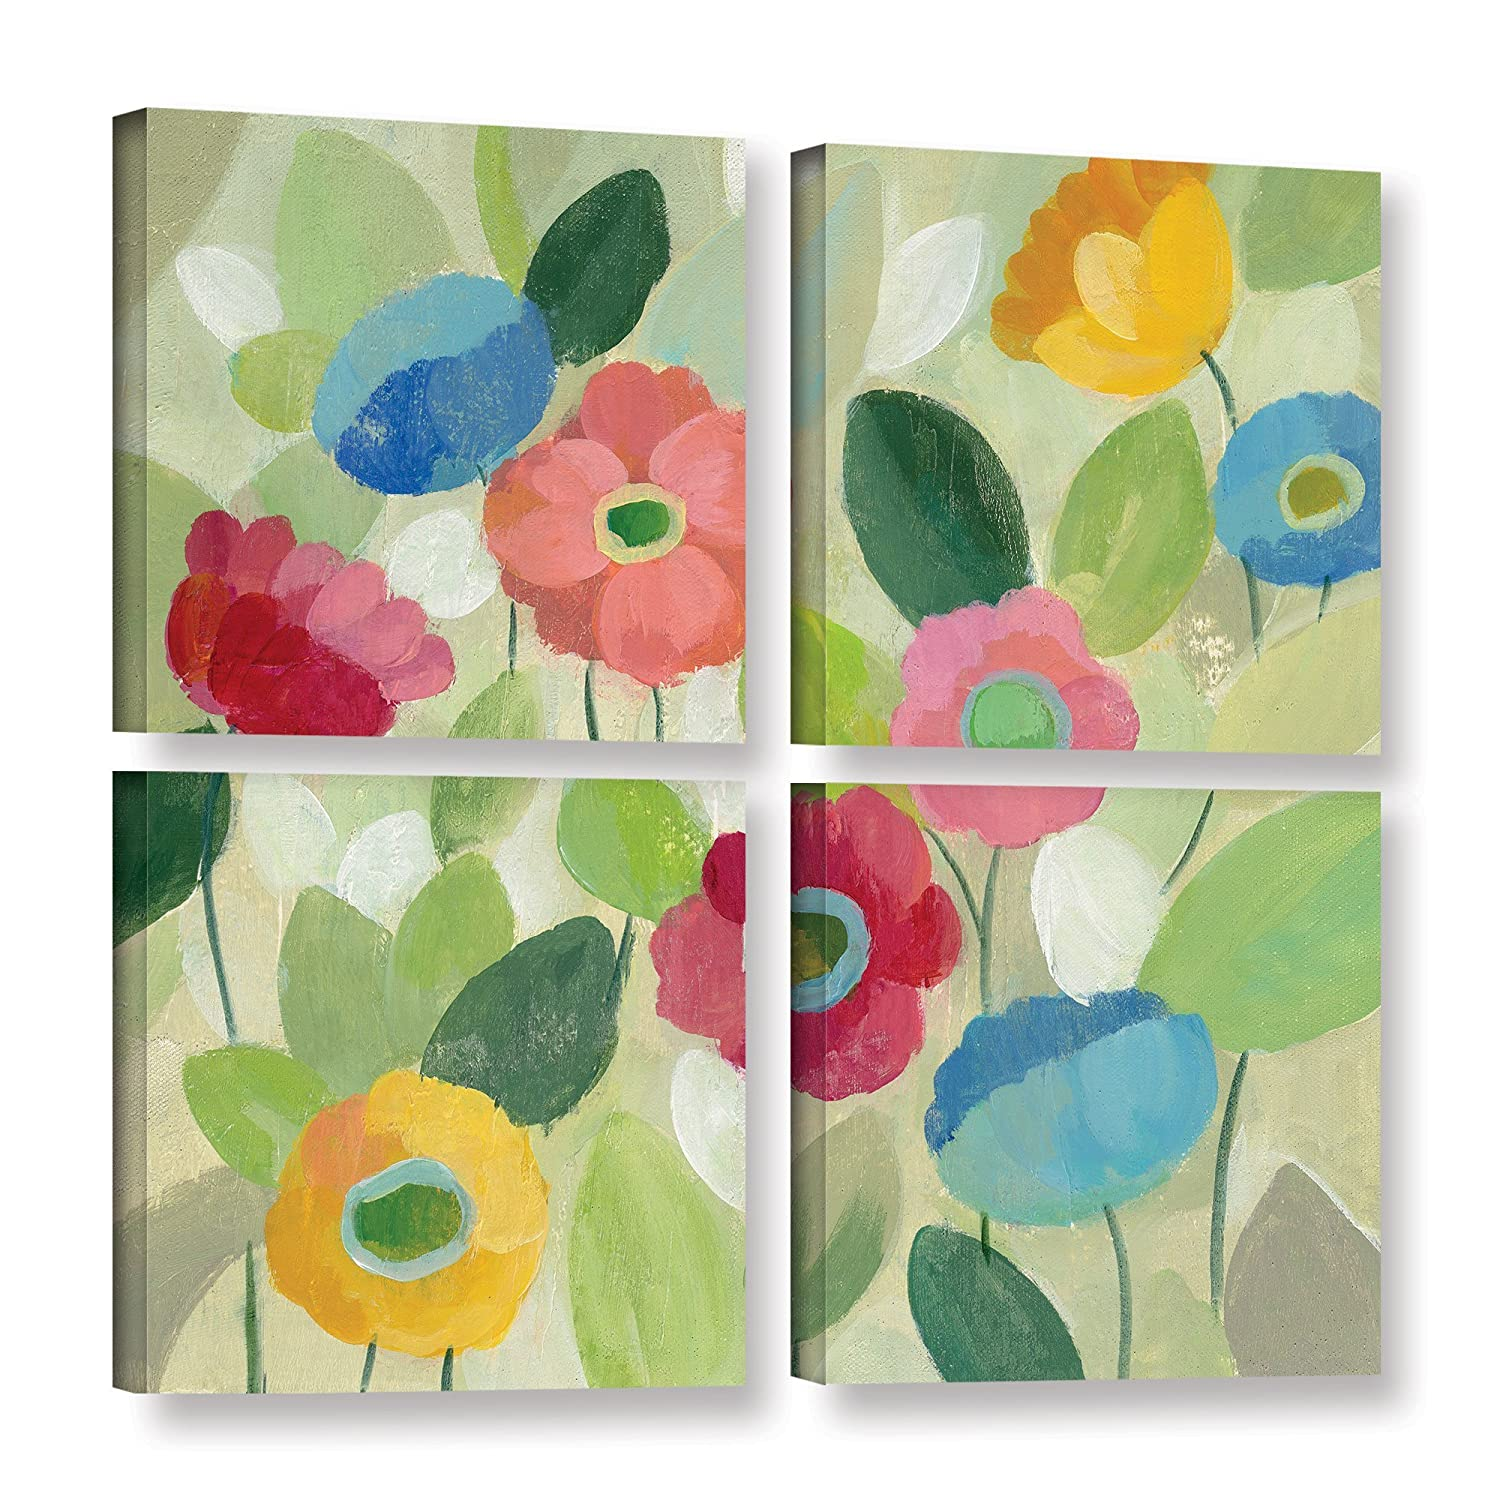 ArtWall 4 Piece Silvia Vassilevas Fairy Tale Flowers IV Gallery Wrapped Canvas Square Set 48 x 48